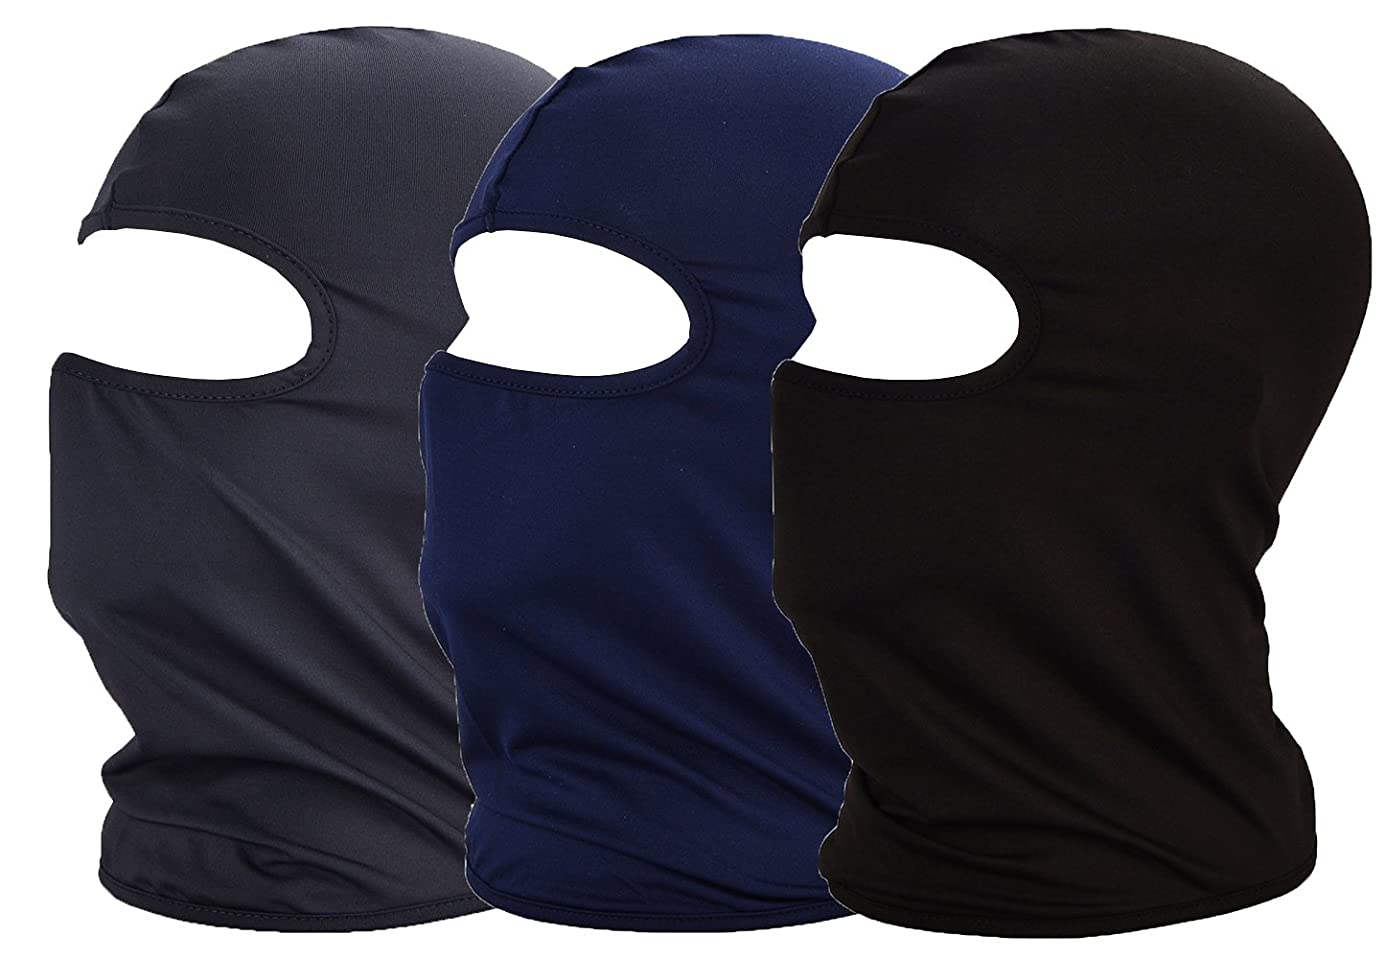 MAYOUTH Balaclava UV Protection Summer Face Masks for Cycling Outdoor Sports Full Face Mask Breathable 3pack Good Gift Great Present